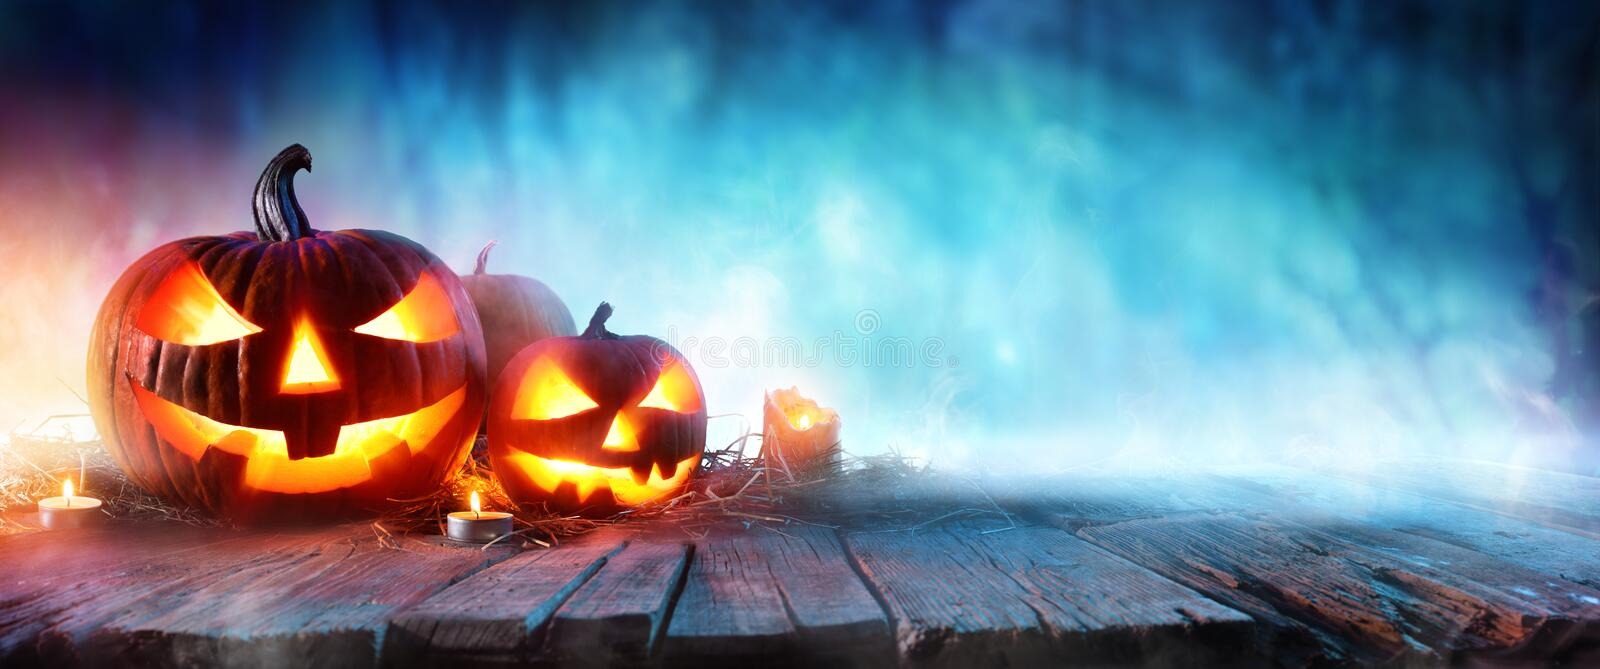 Halloween Pumpkins On Wood In A Spooky Forest royalty free stock images